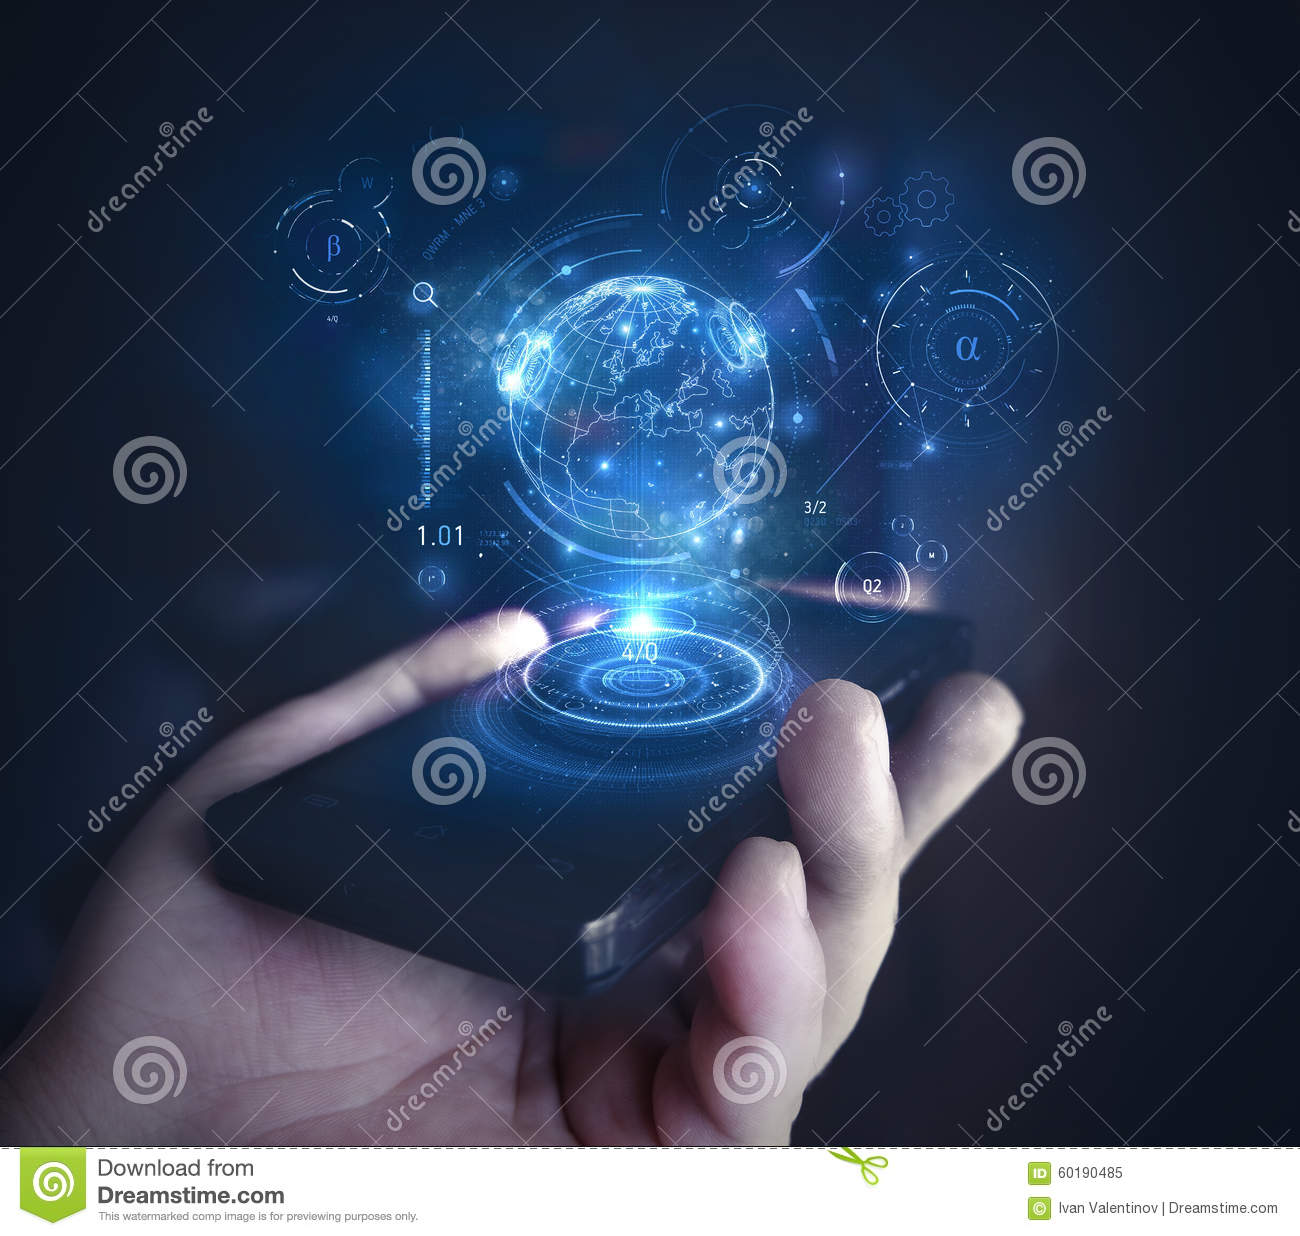 hologram technology in smartphone Find and save ideas about hologram technology on pinterest | see more ideas about hologram projection, future technology ideas and technology hologram technology coming to a smartphone near you soon - to see the future of.